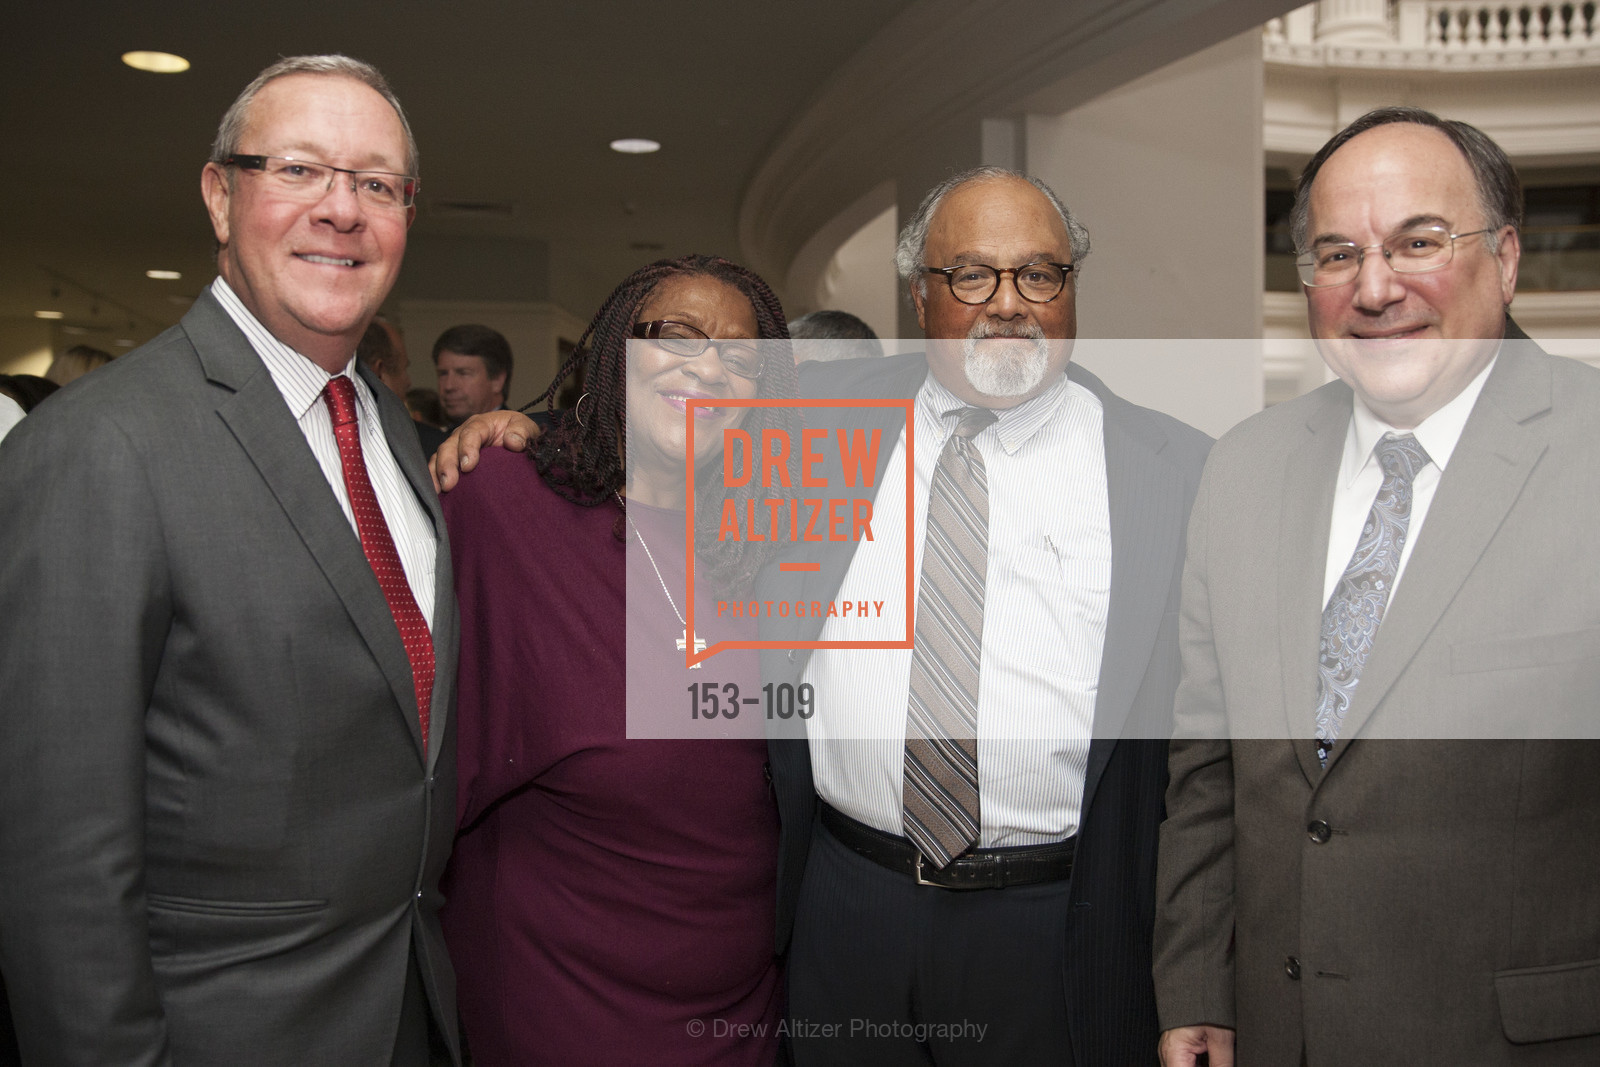 David McMurray, Gloria Lockett, Eric Goosey, Jeff Sturthio, PANGAEA GLOBAL HEALTH Leadership Dinner at Rotunda in Oakland, The Rotunda. Oakland, May 11th, 2015,Drew Altizer, Drew Altizer Photography, full-service agency, private events, San Francisco photographer, photographer california